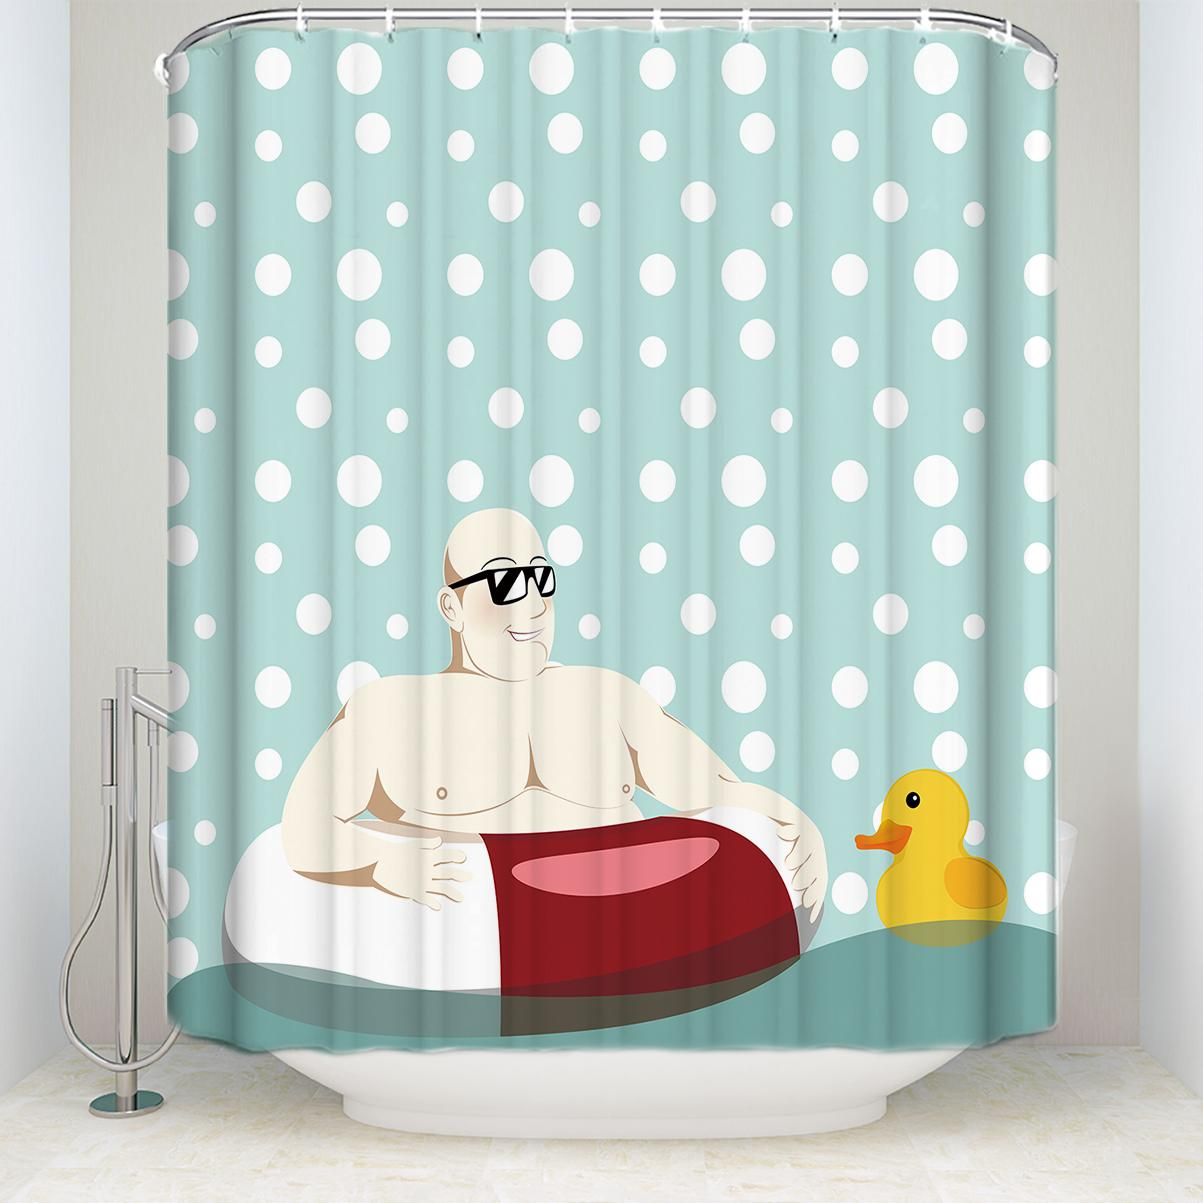 2018 Creative Design Swimming Man Yellow Duck Shower Curtain Waterproof Polyester Fabric Bathroom Decor Printed From Icelly 3027